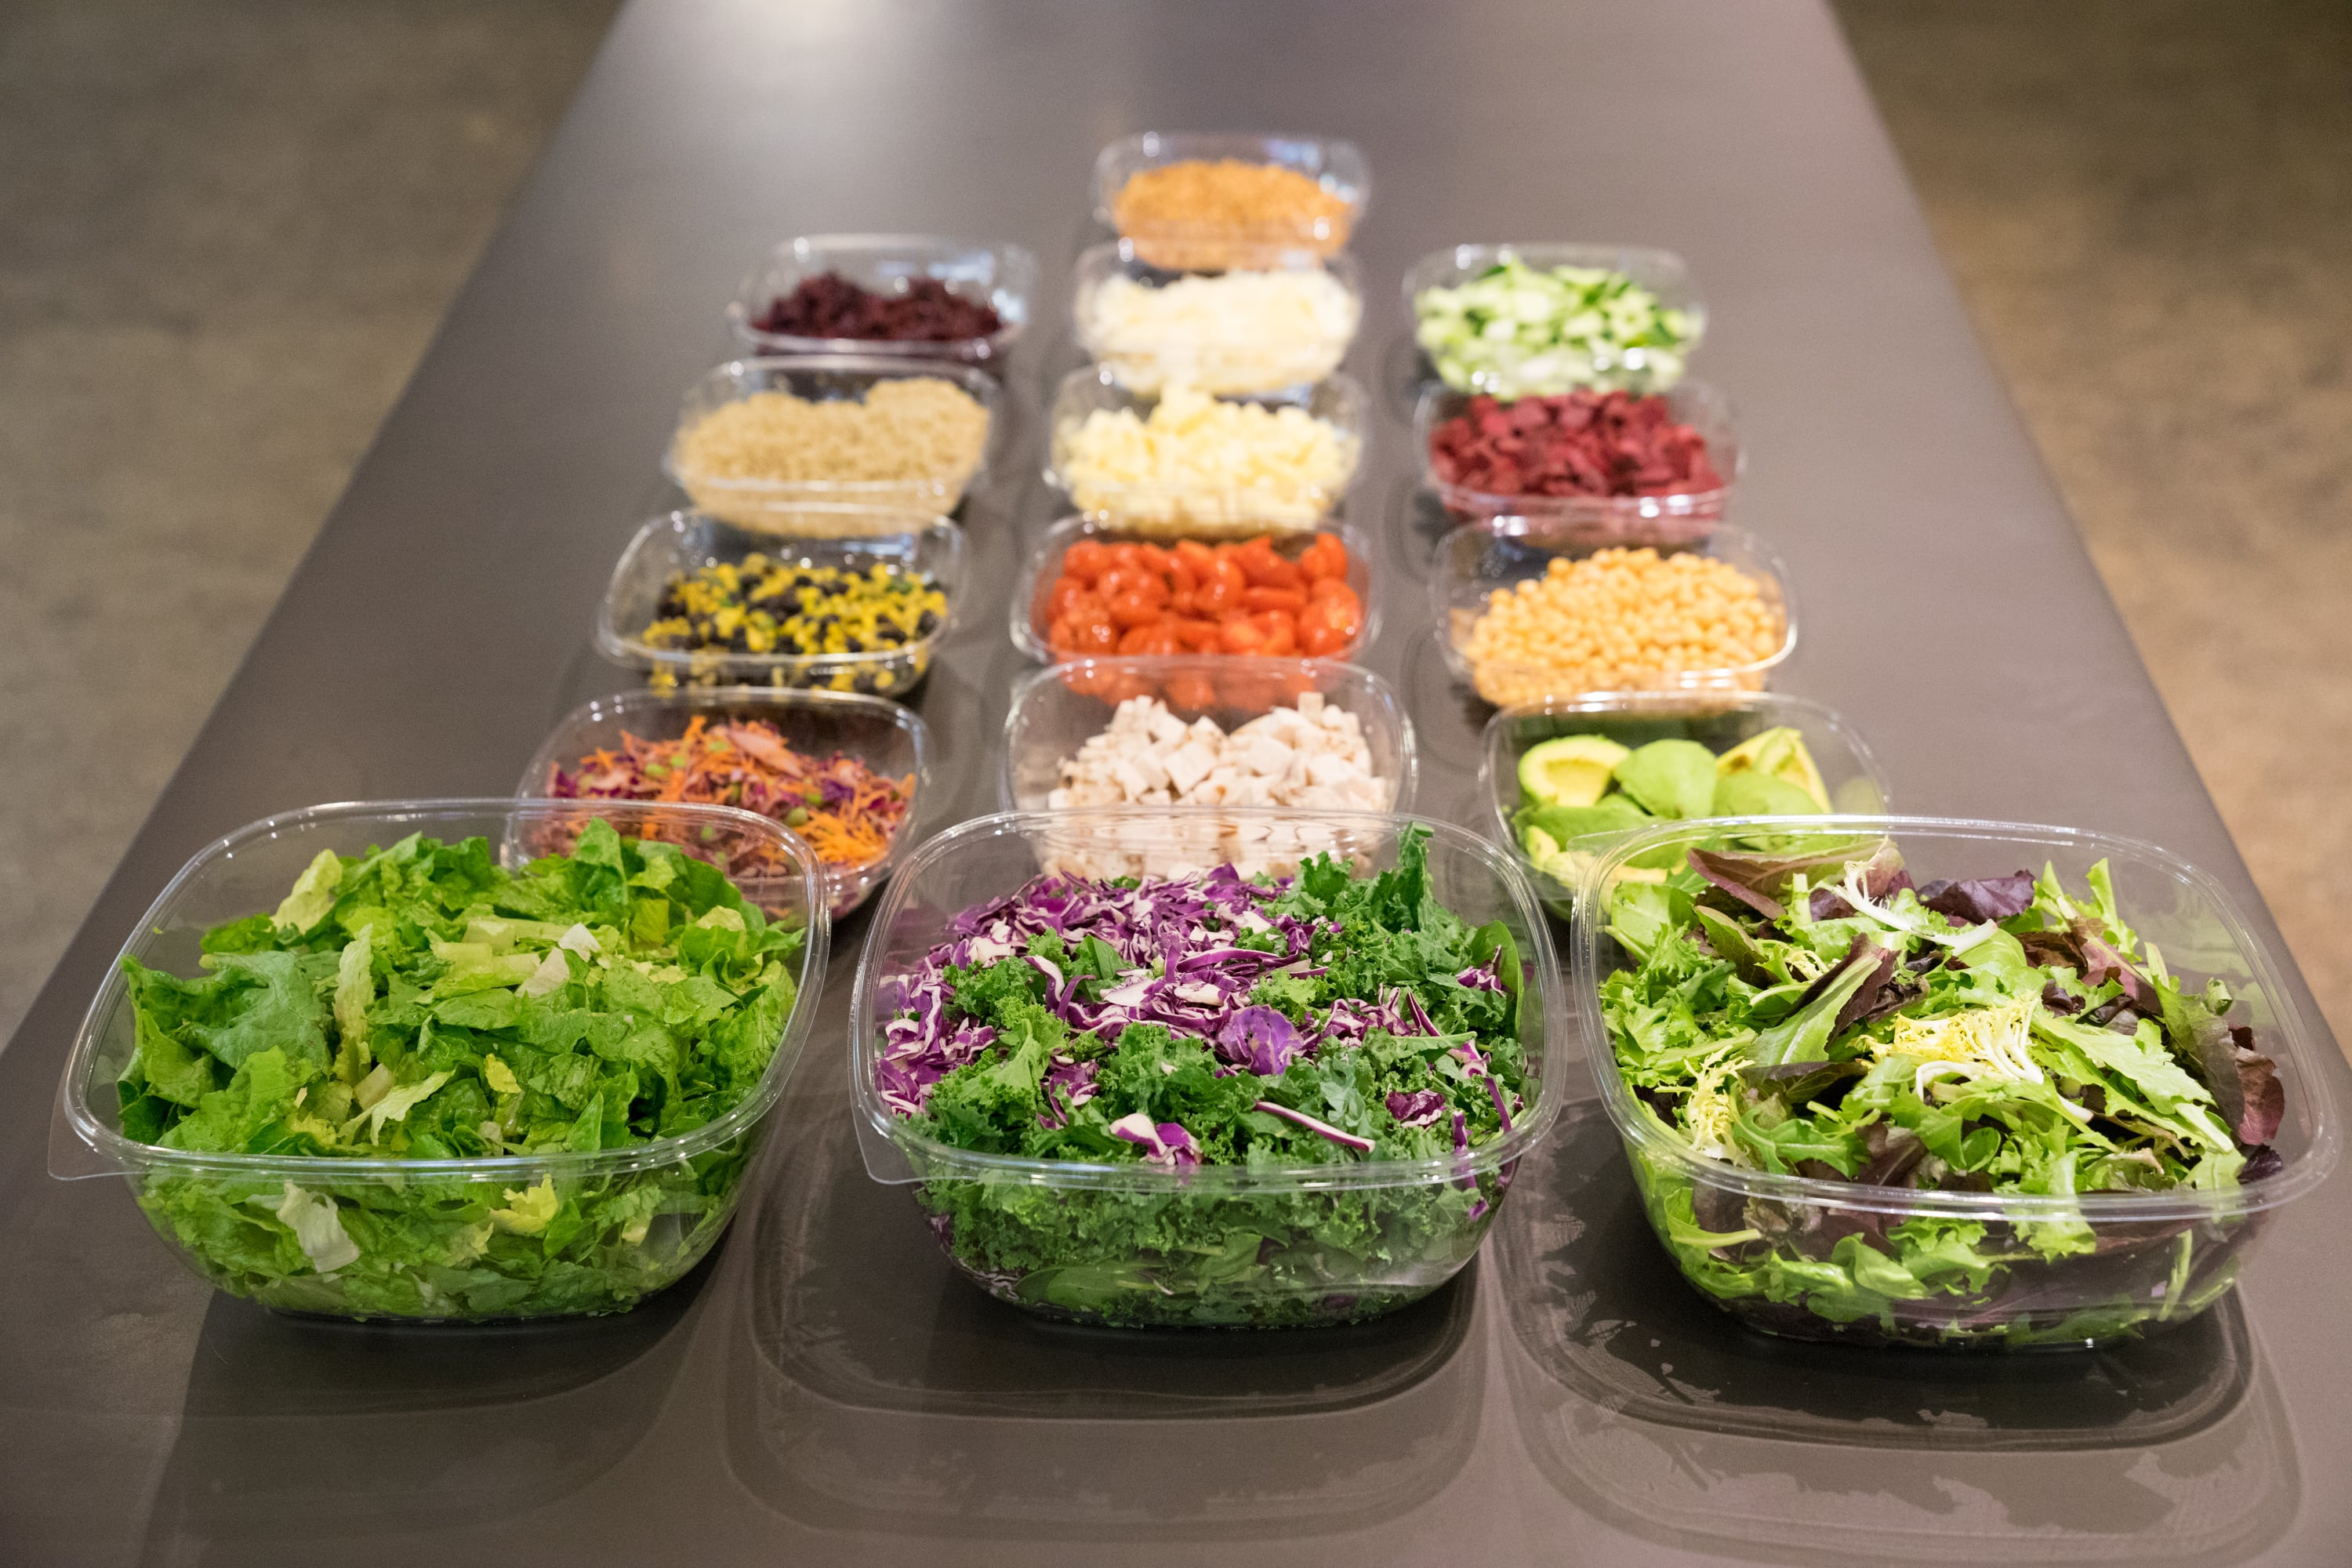 The best healthy restaurants in Chicago also do catering.